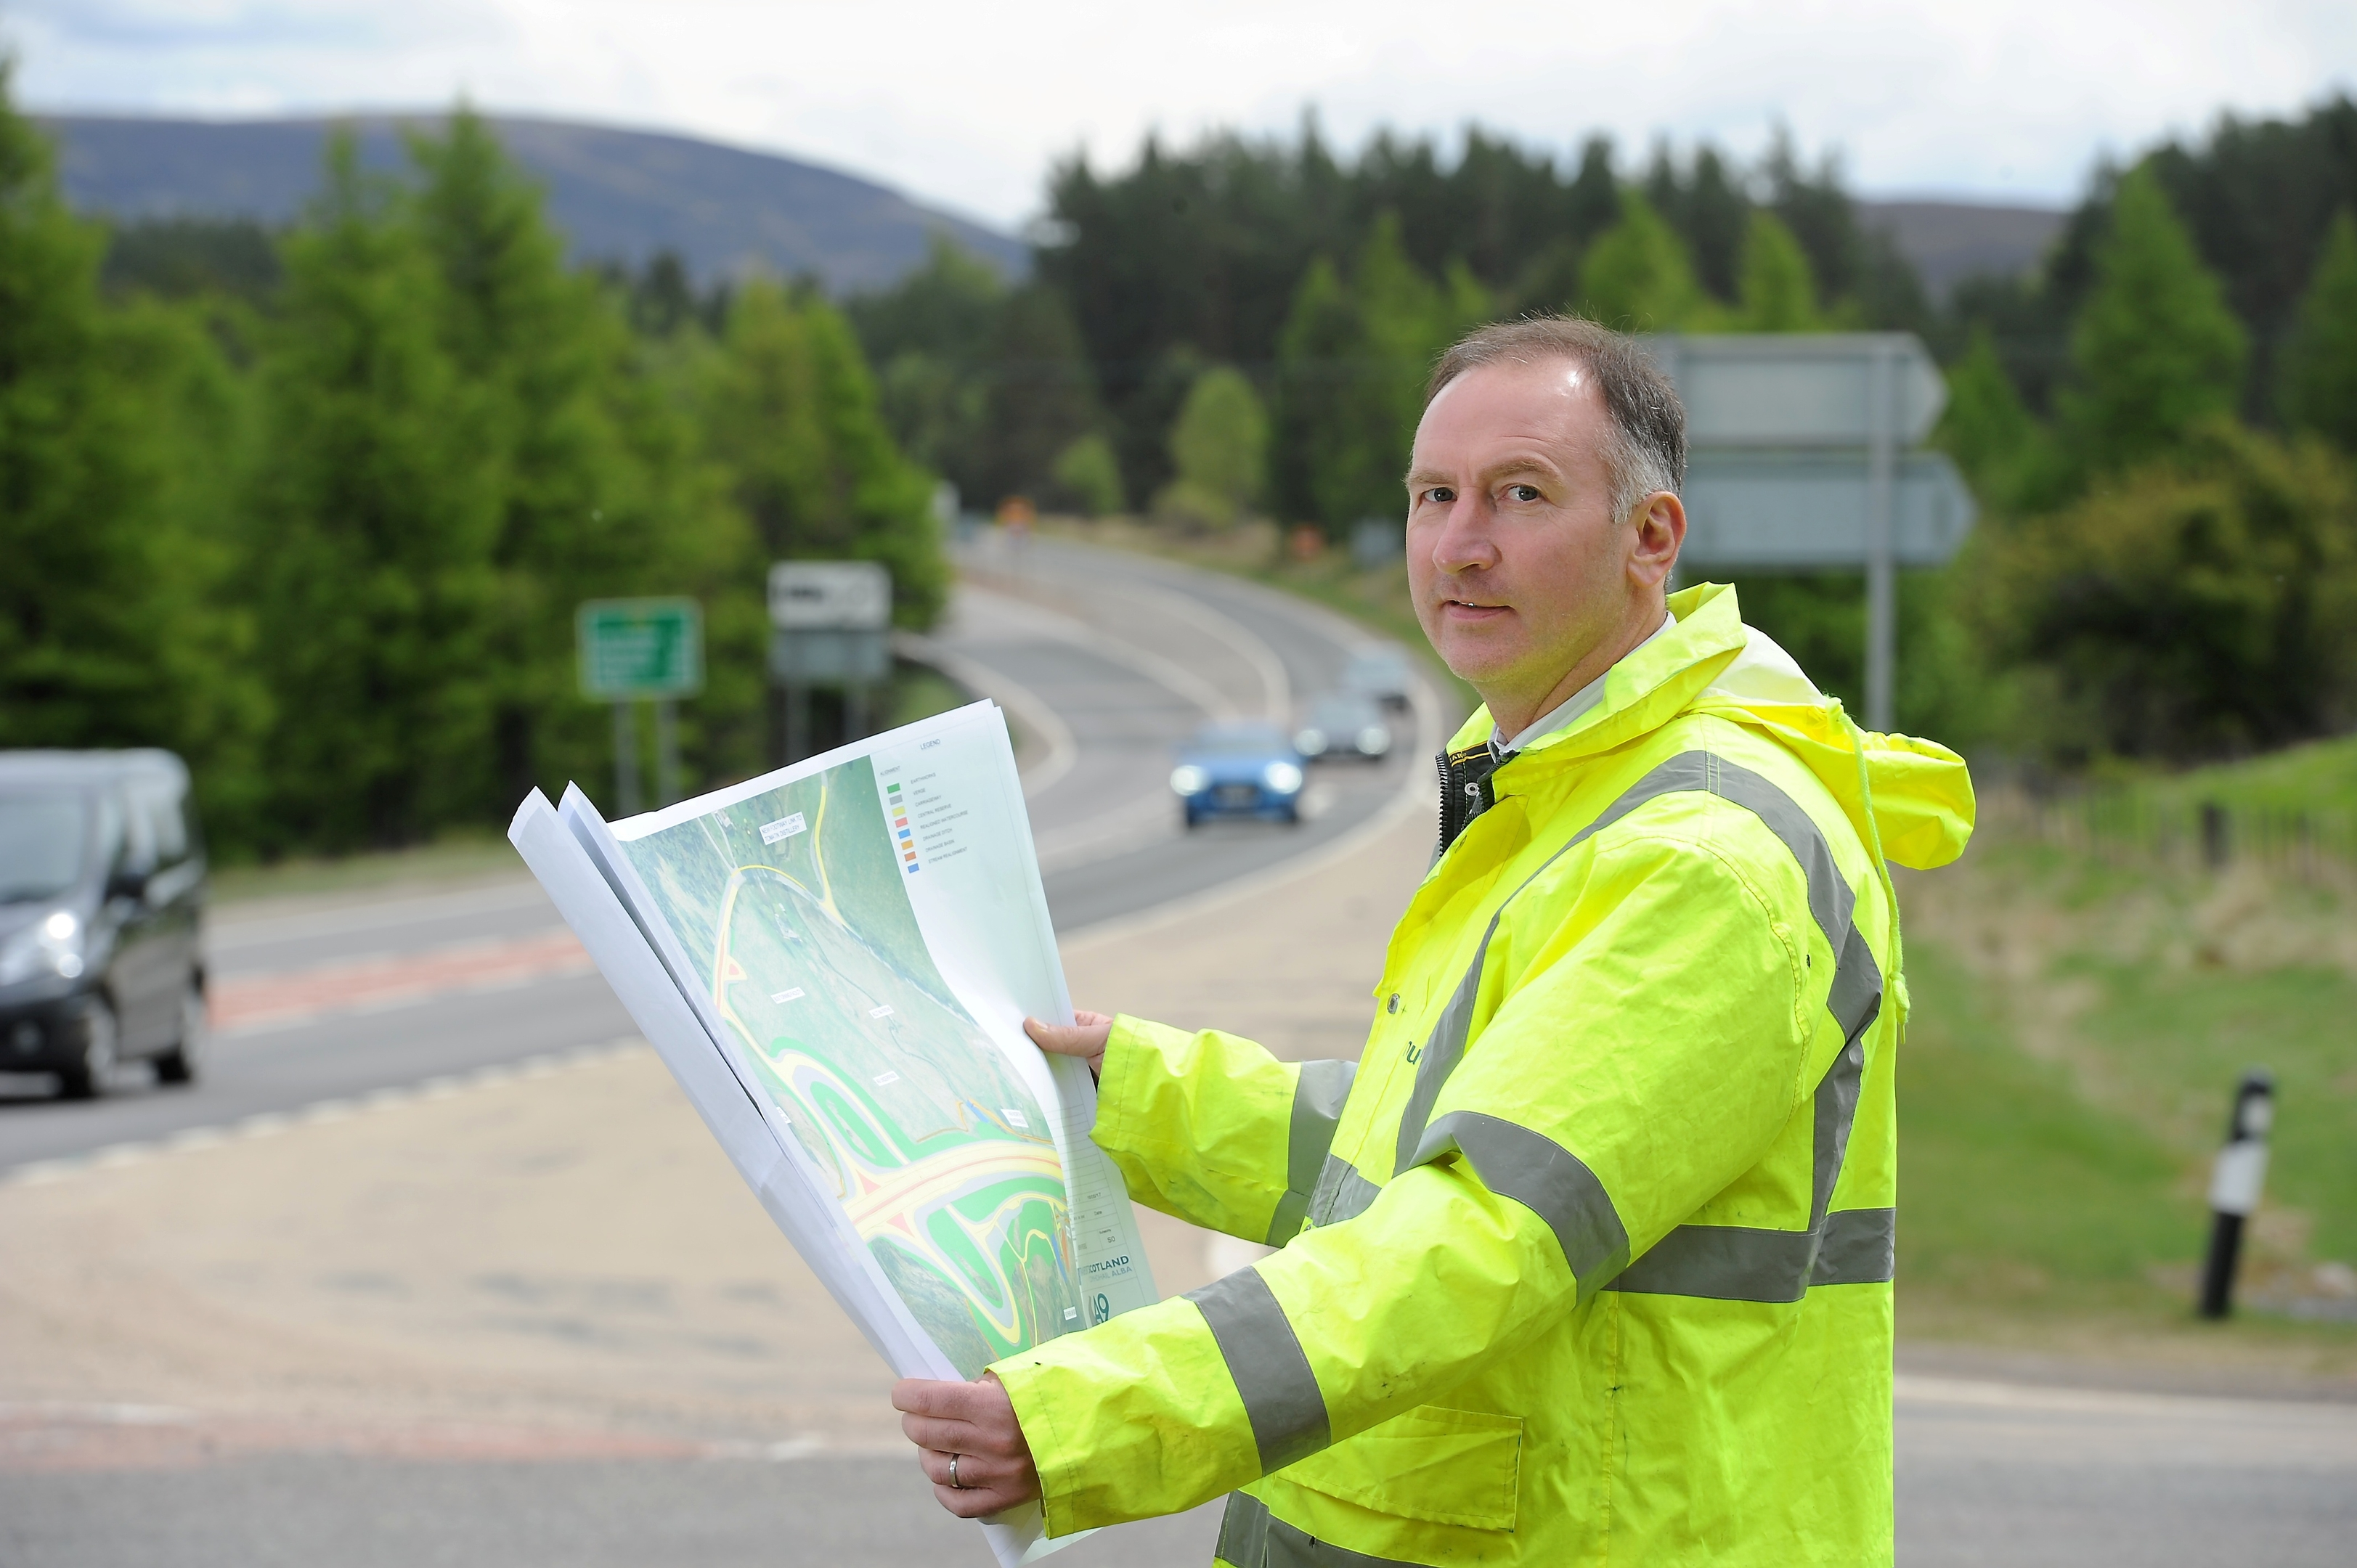 Steve Byer, Project Manager for the Tomatin to Moy section of the new A9